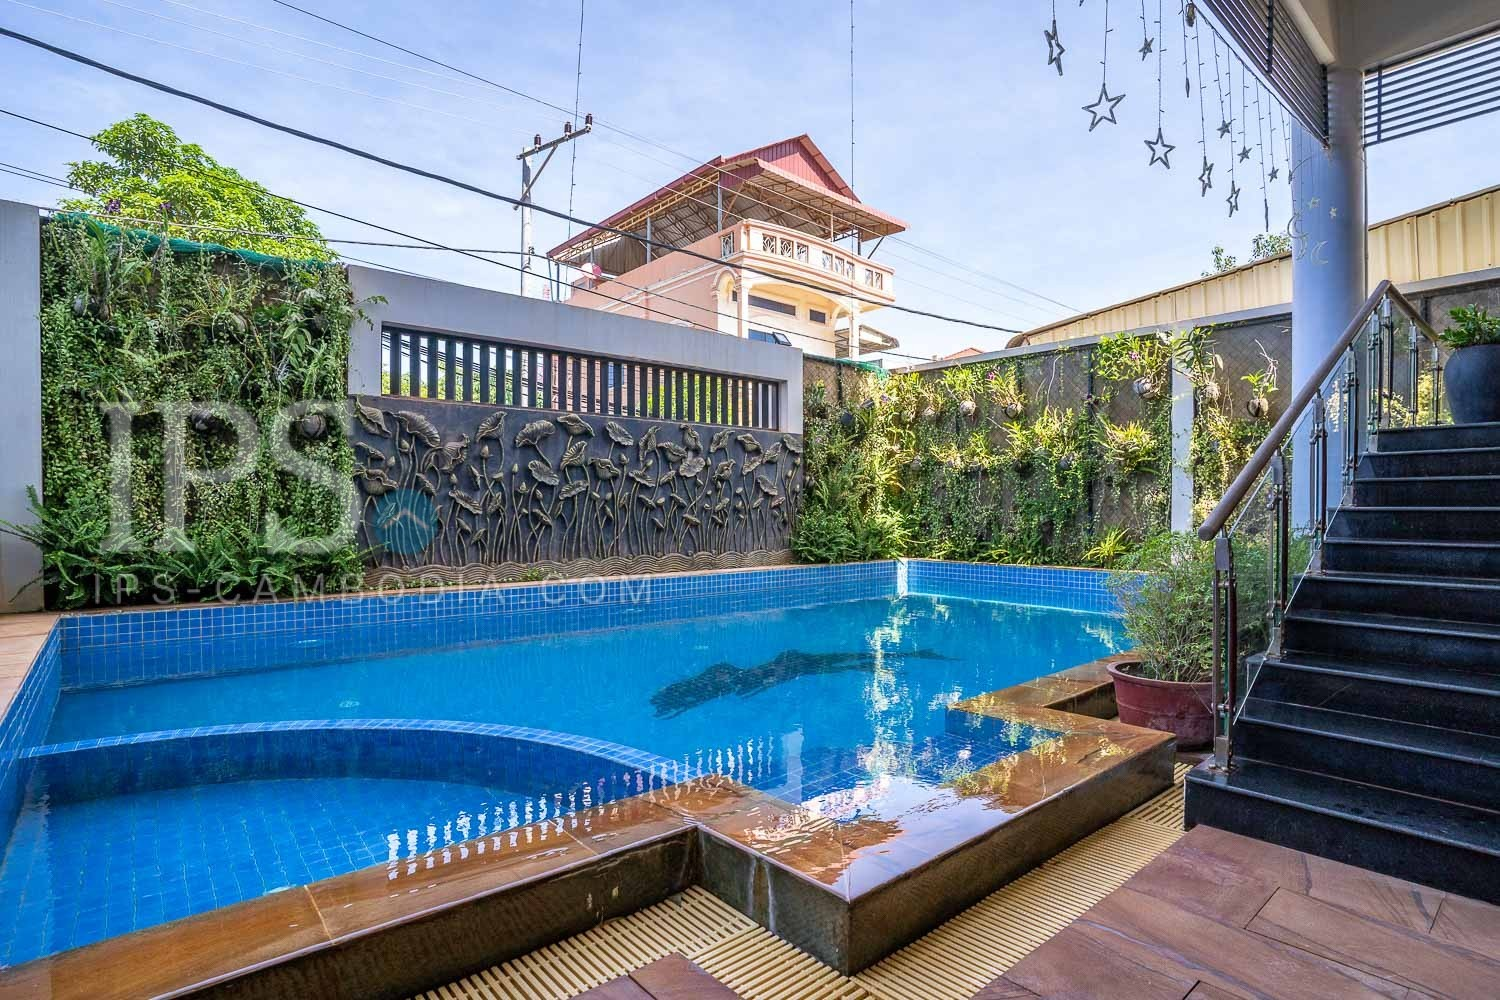 2 Bedroom Apartment For Rent - Siem Reap Angkor